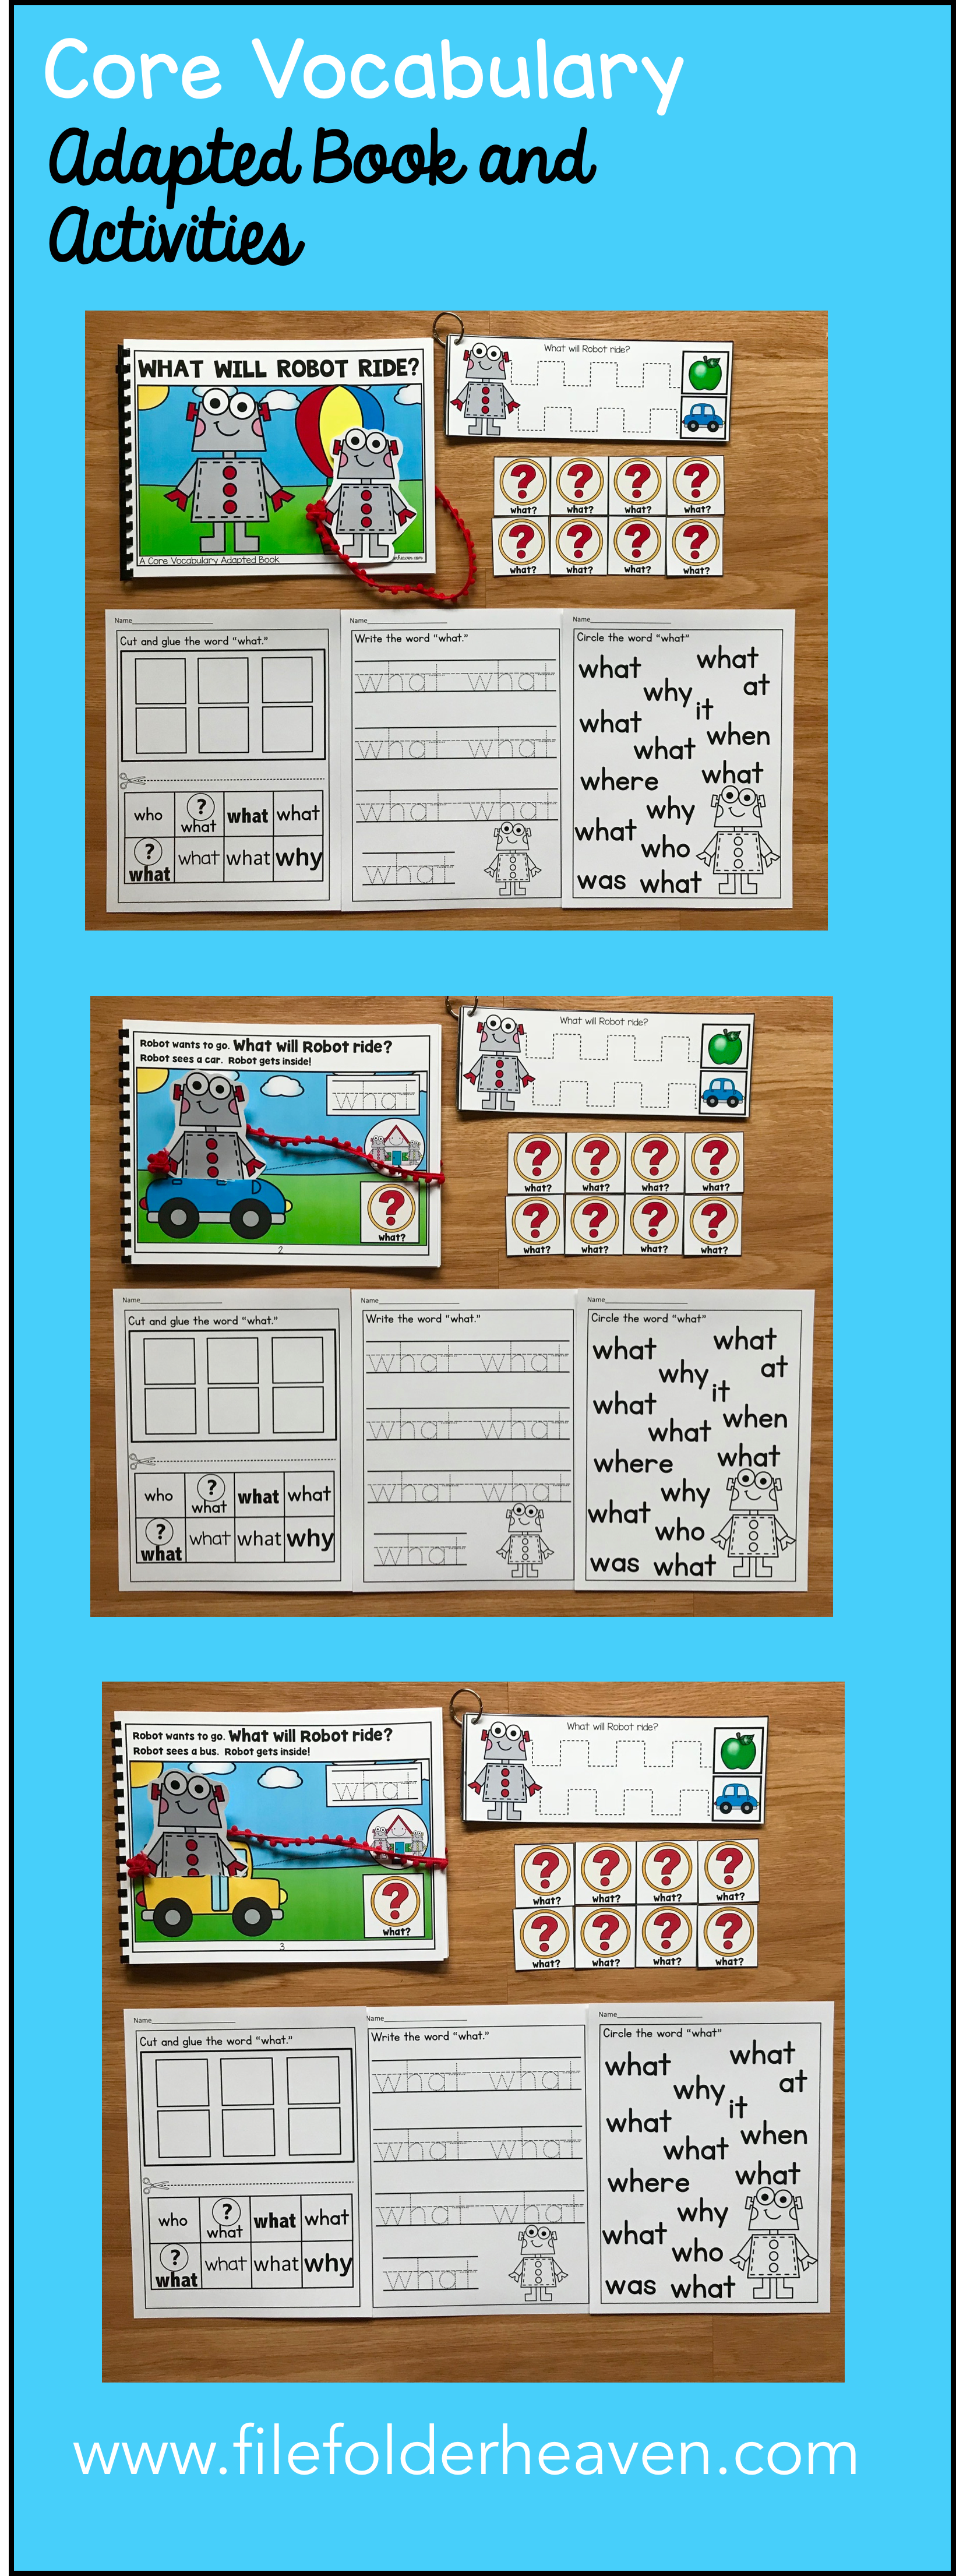 This Core Vocabulary Adapted Book What Will Robot Ride